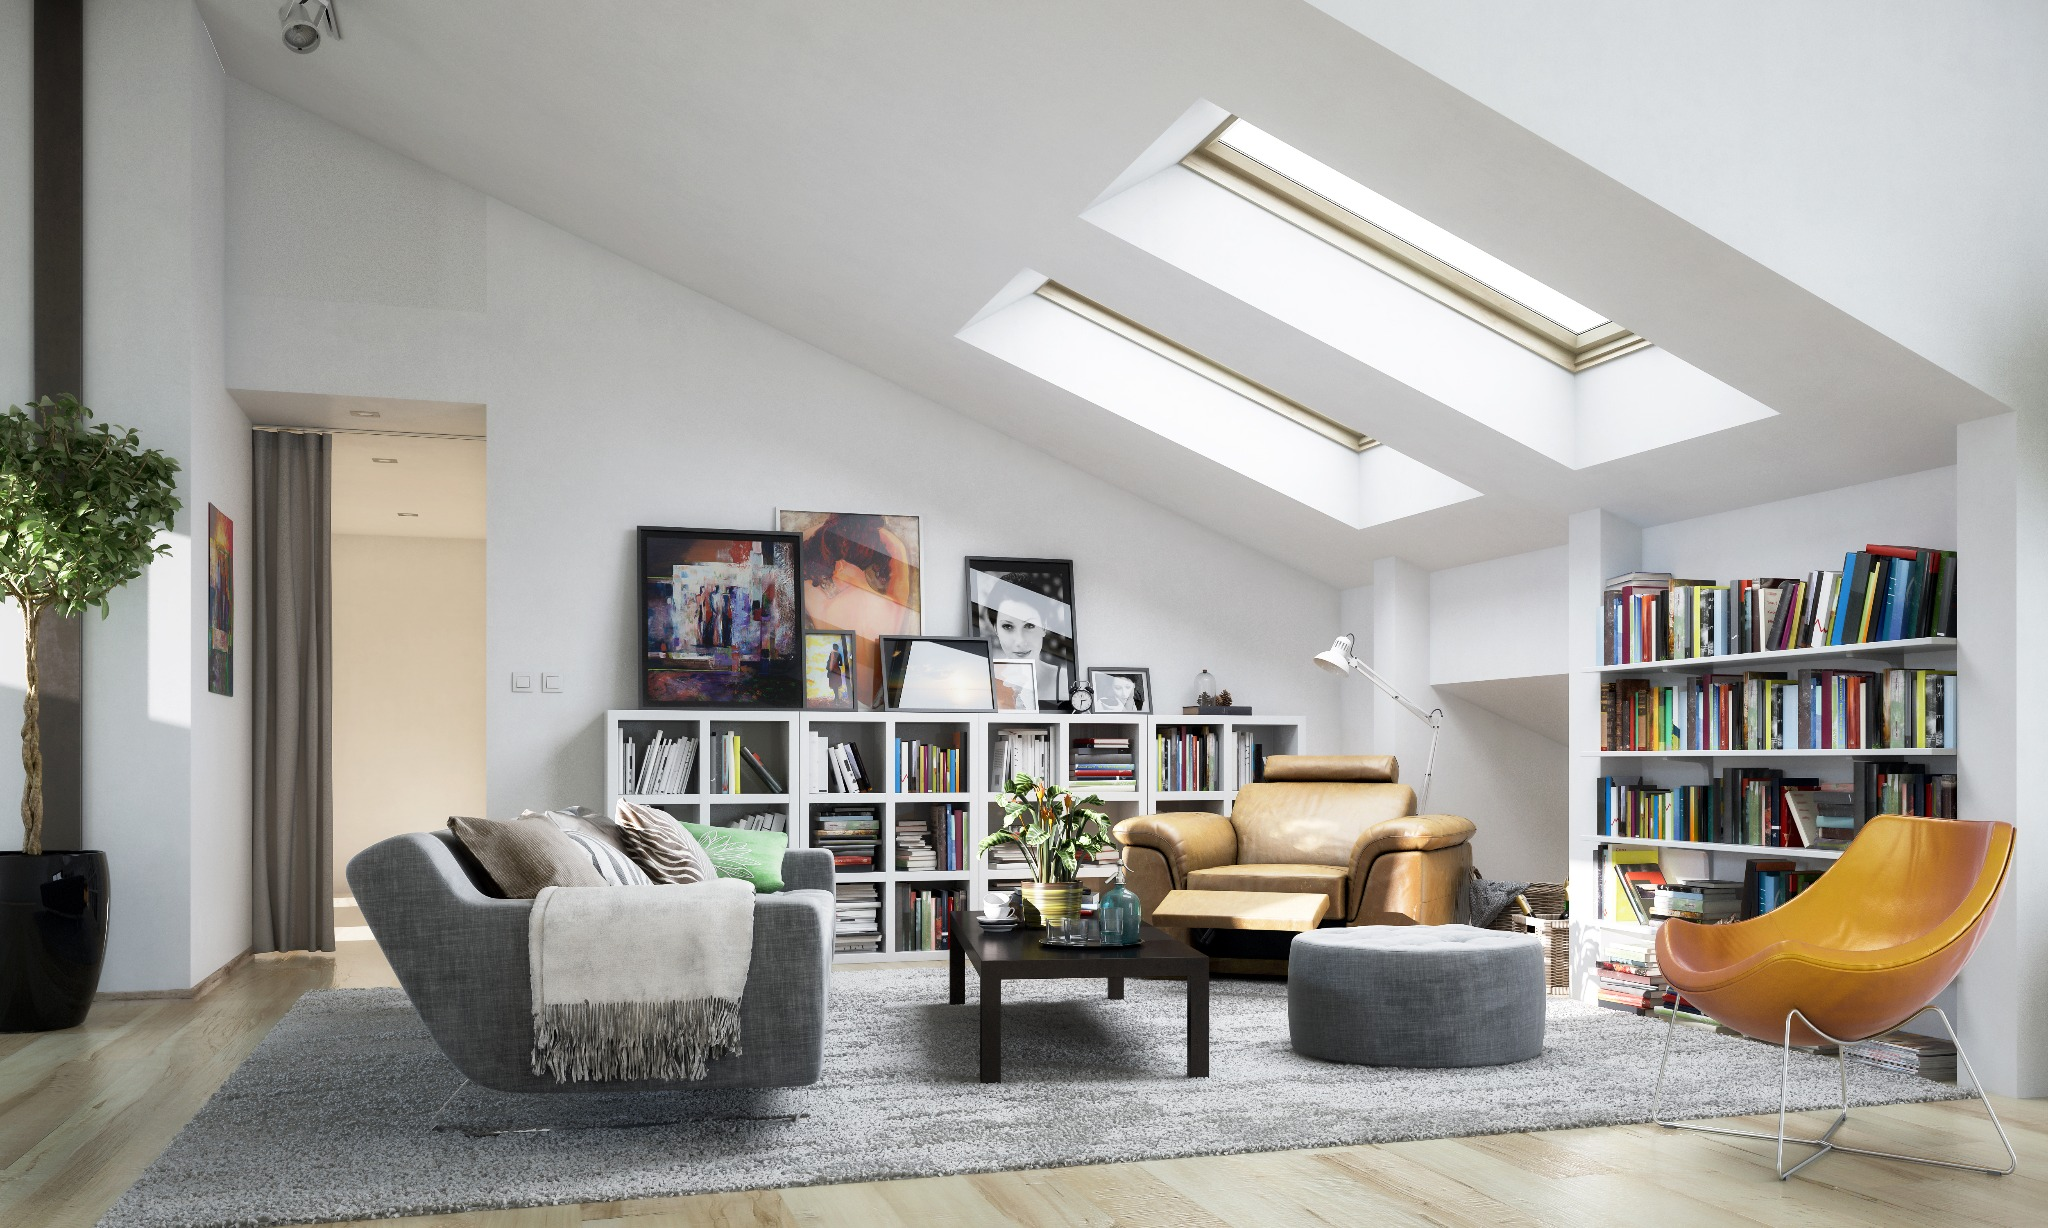 A modern style library bonus room with bright furniture and skylights in a slanted roof.